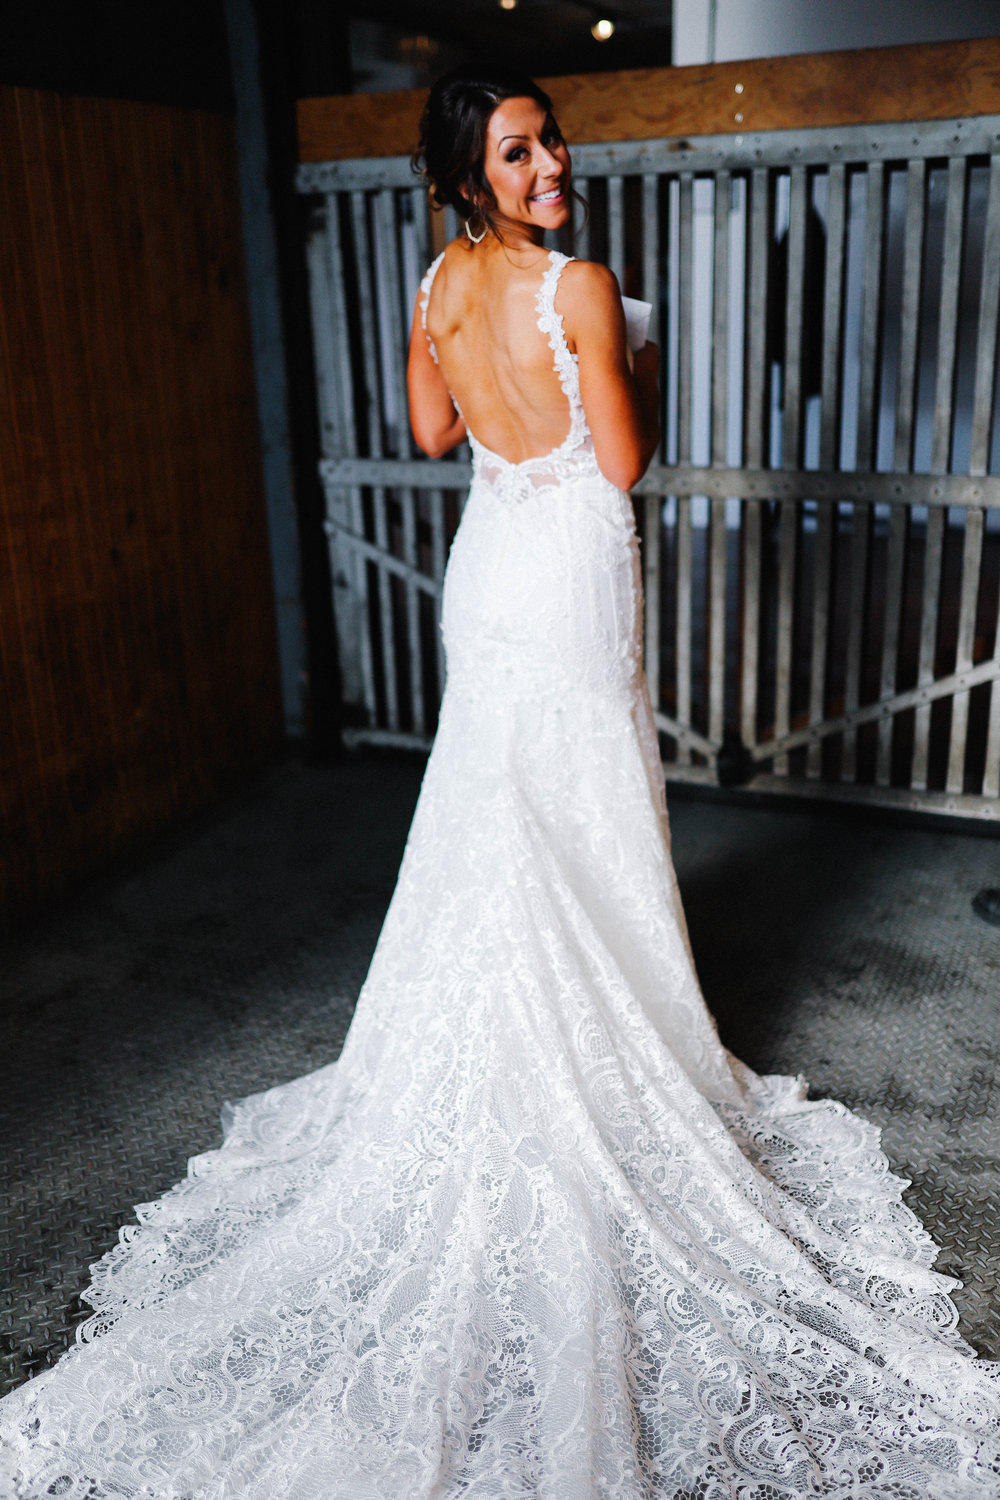 First Looks (1 of 25).jpg